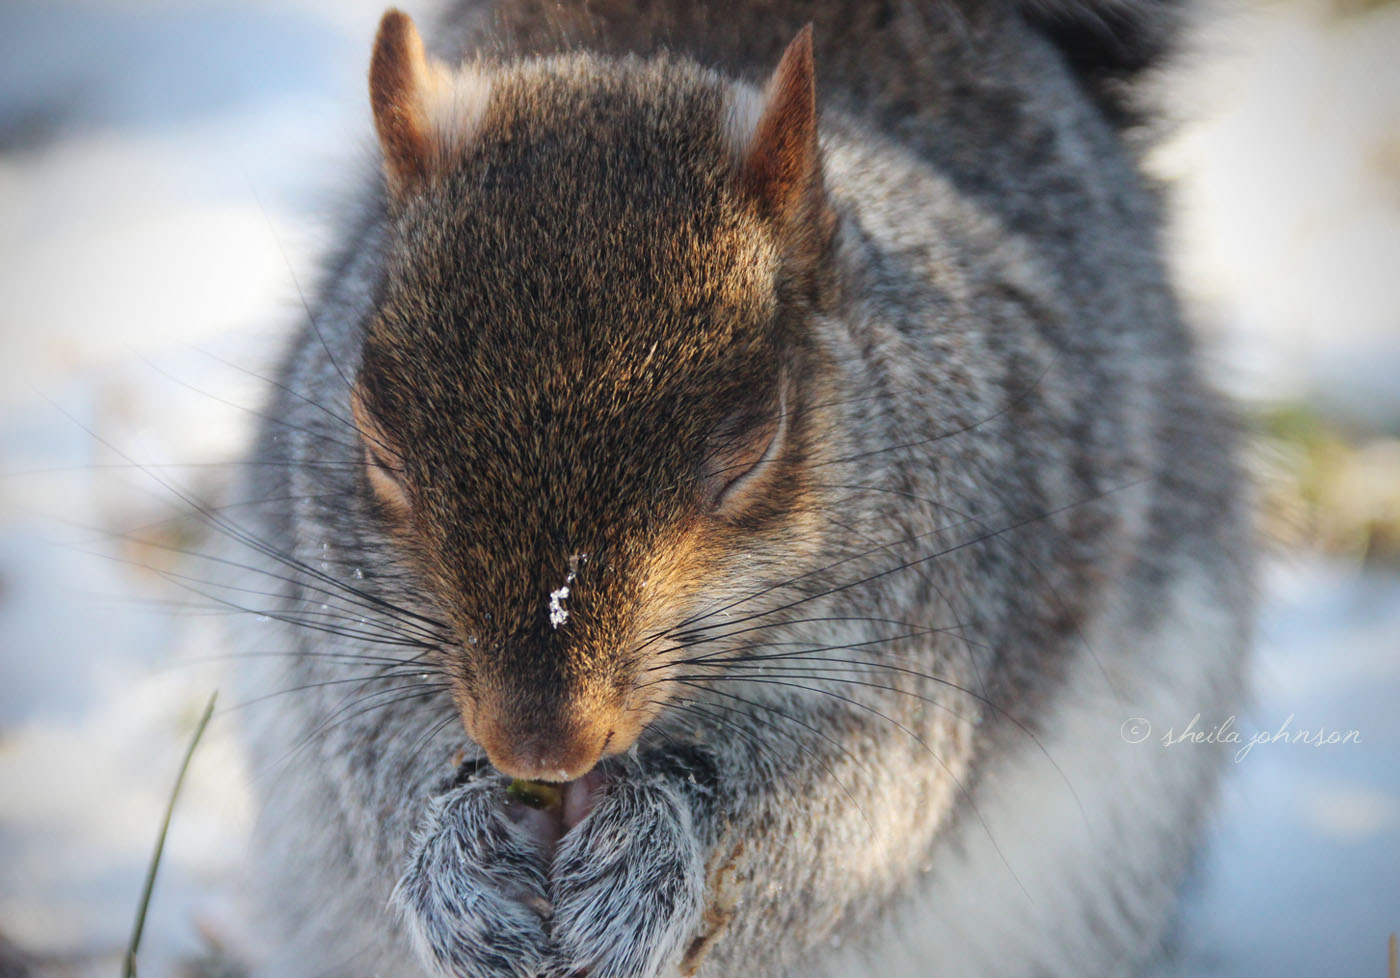 This Gray Squirrel Seems To Be Praying In The Snow. If He Is, There's No Doubt In My Mind That's He's Praying For Nuts!